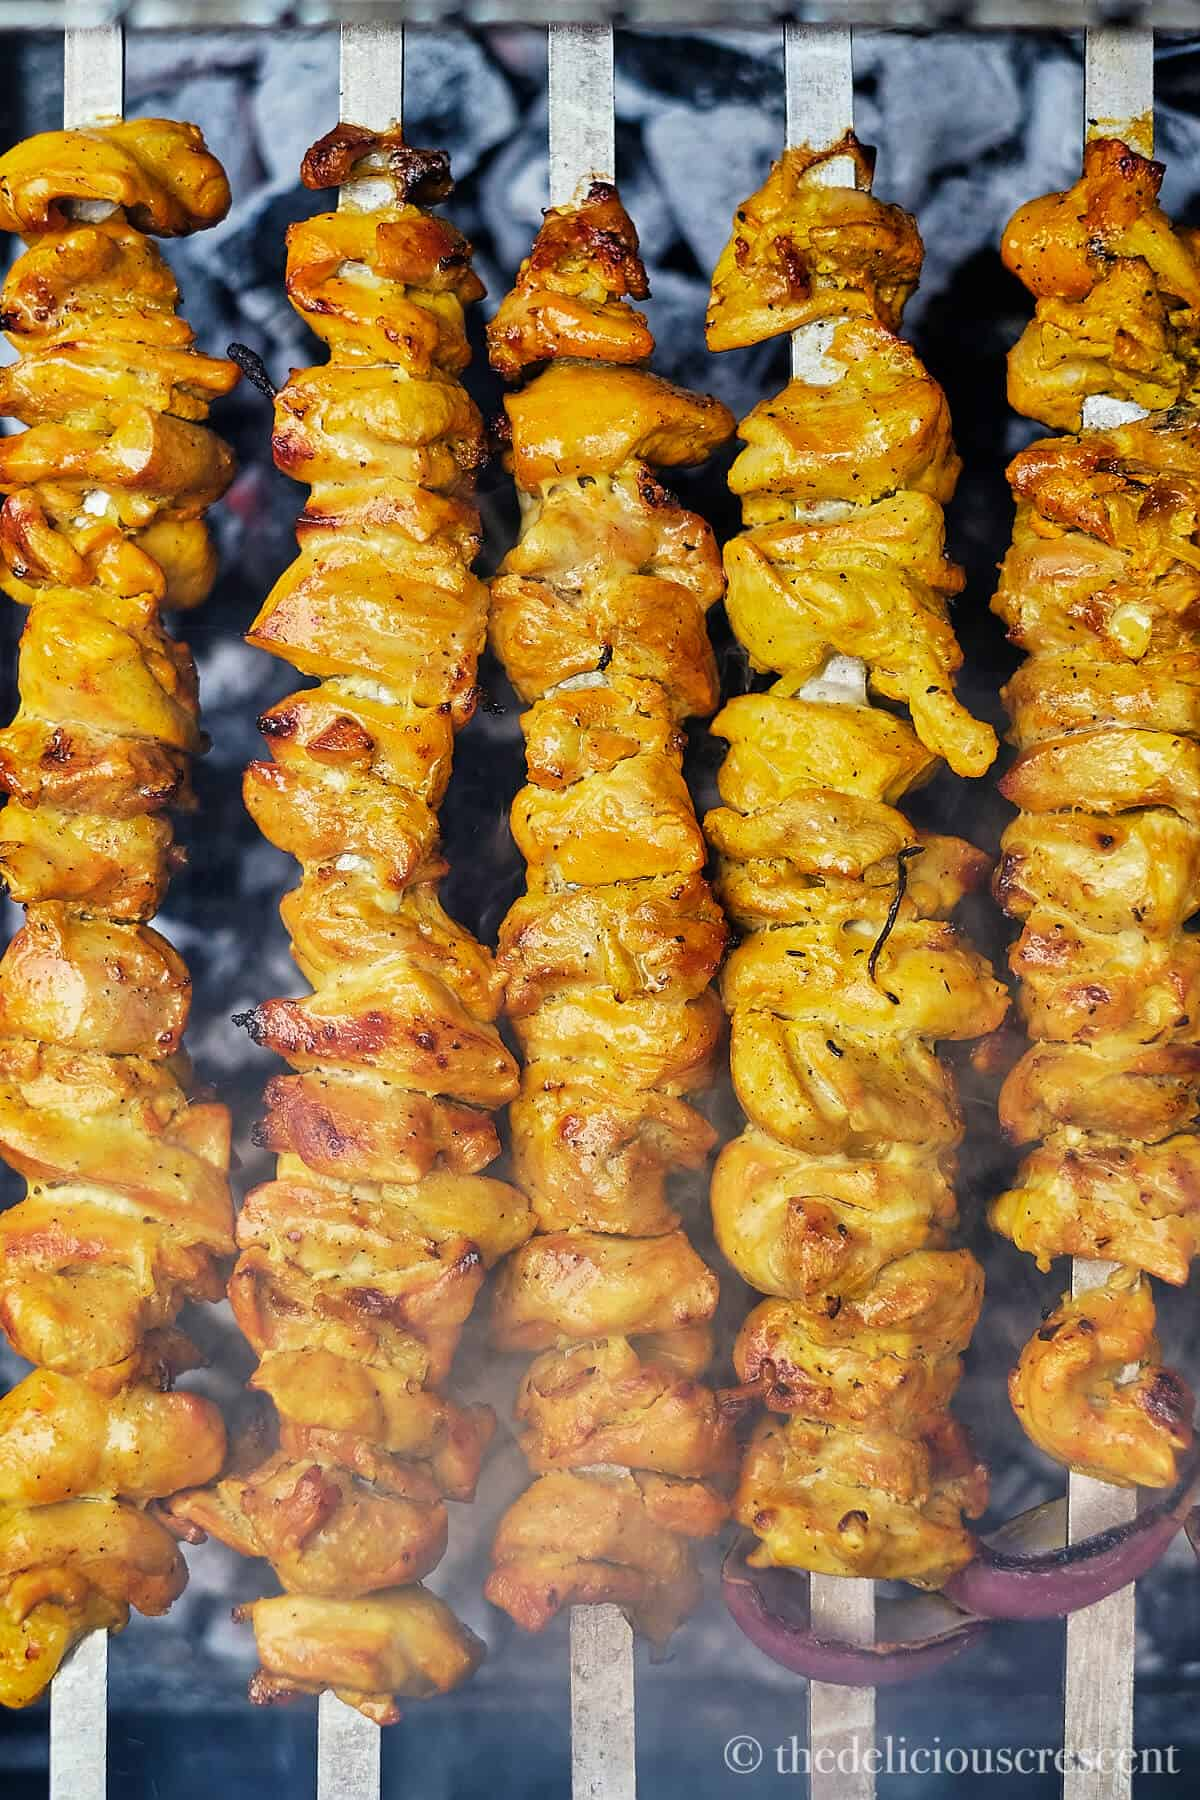 Chicken grilling on skewers.